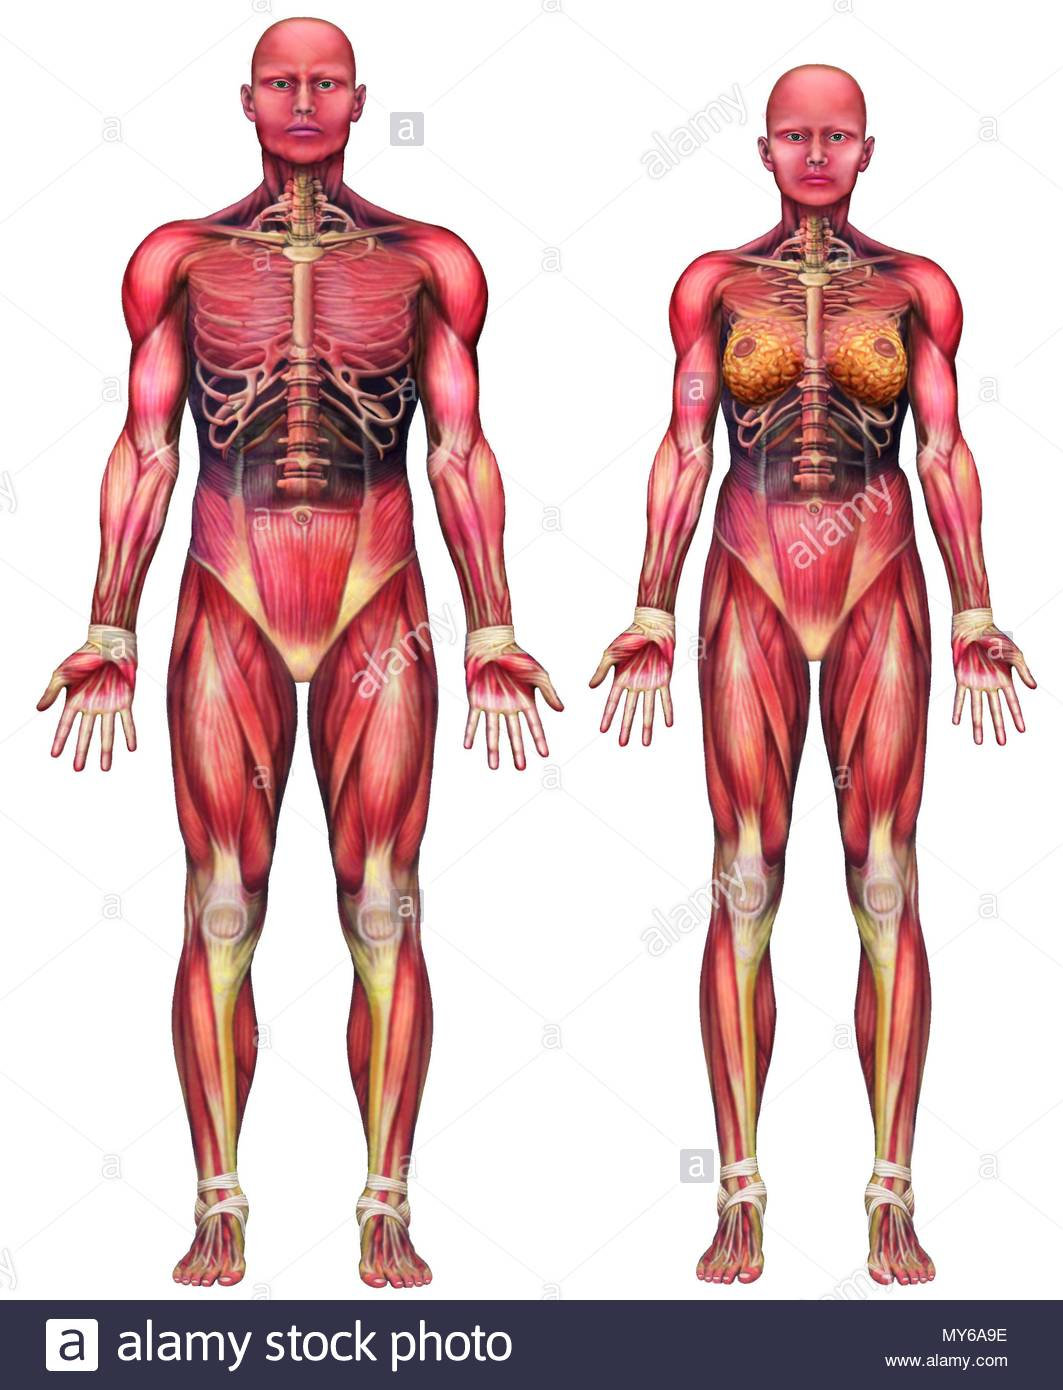 Muscle Types Stock Photos Images Alamy Diagram Showing All Of The Muscles In A Chicken Wing Bodys Man And Woman Image